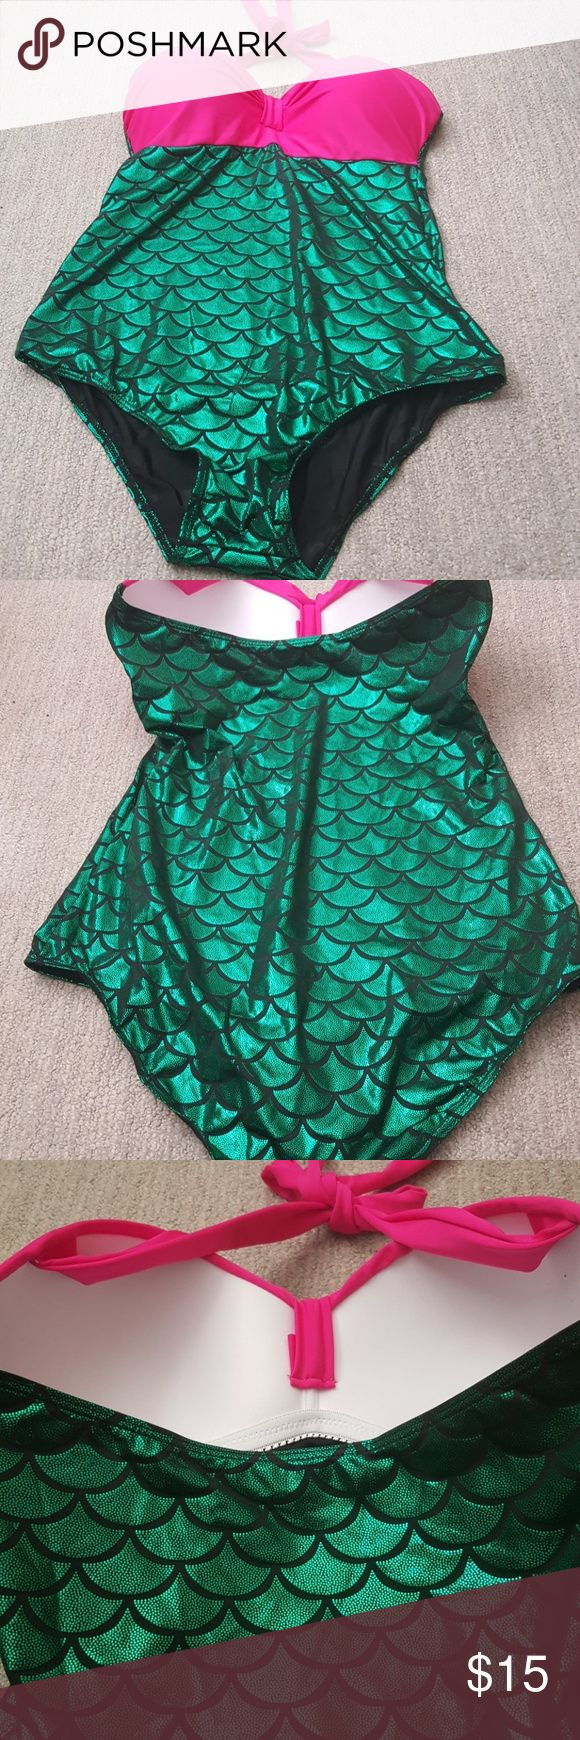 Mermaid bathing suit This item was bought from amazon. Its a mermaid style bathing suit, has a halter tie top. It is a one peice suit, still has the protection cover on crotch area. I tried this on over shape wear, its to small for me. Inside is lined black fabric, has a bright green mermaid scale pattern all over bottom. I have never worn this to the beach or pool its a clean bathing suit. Swim One Pieces